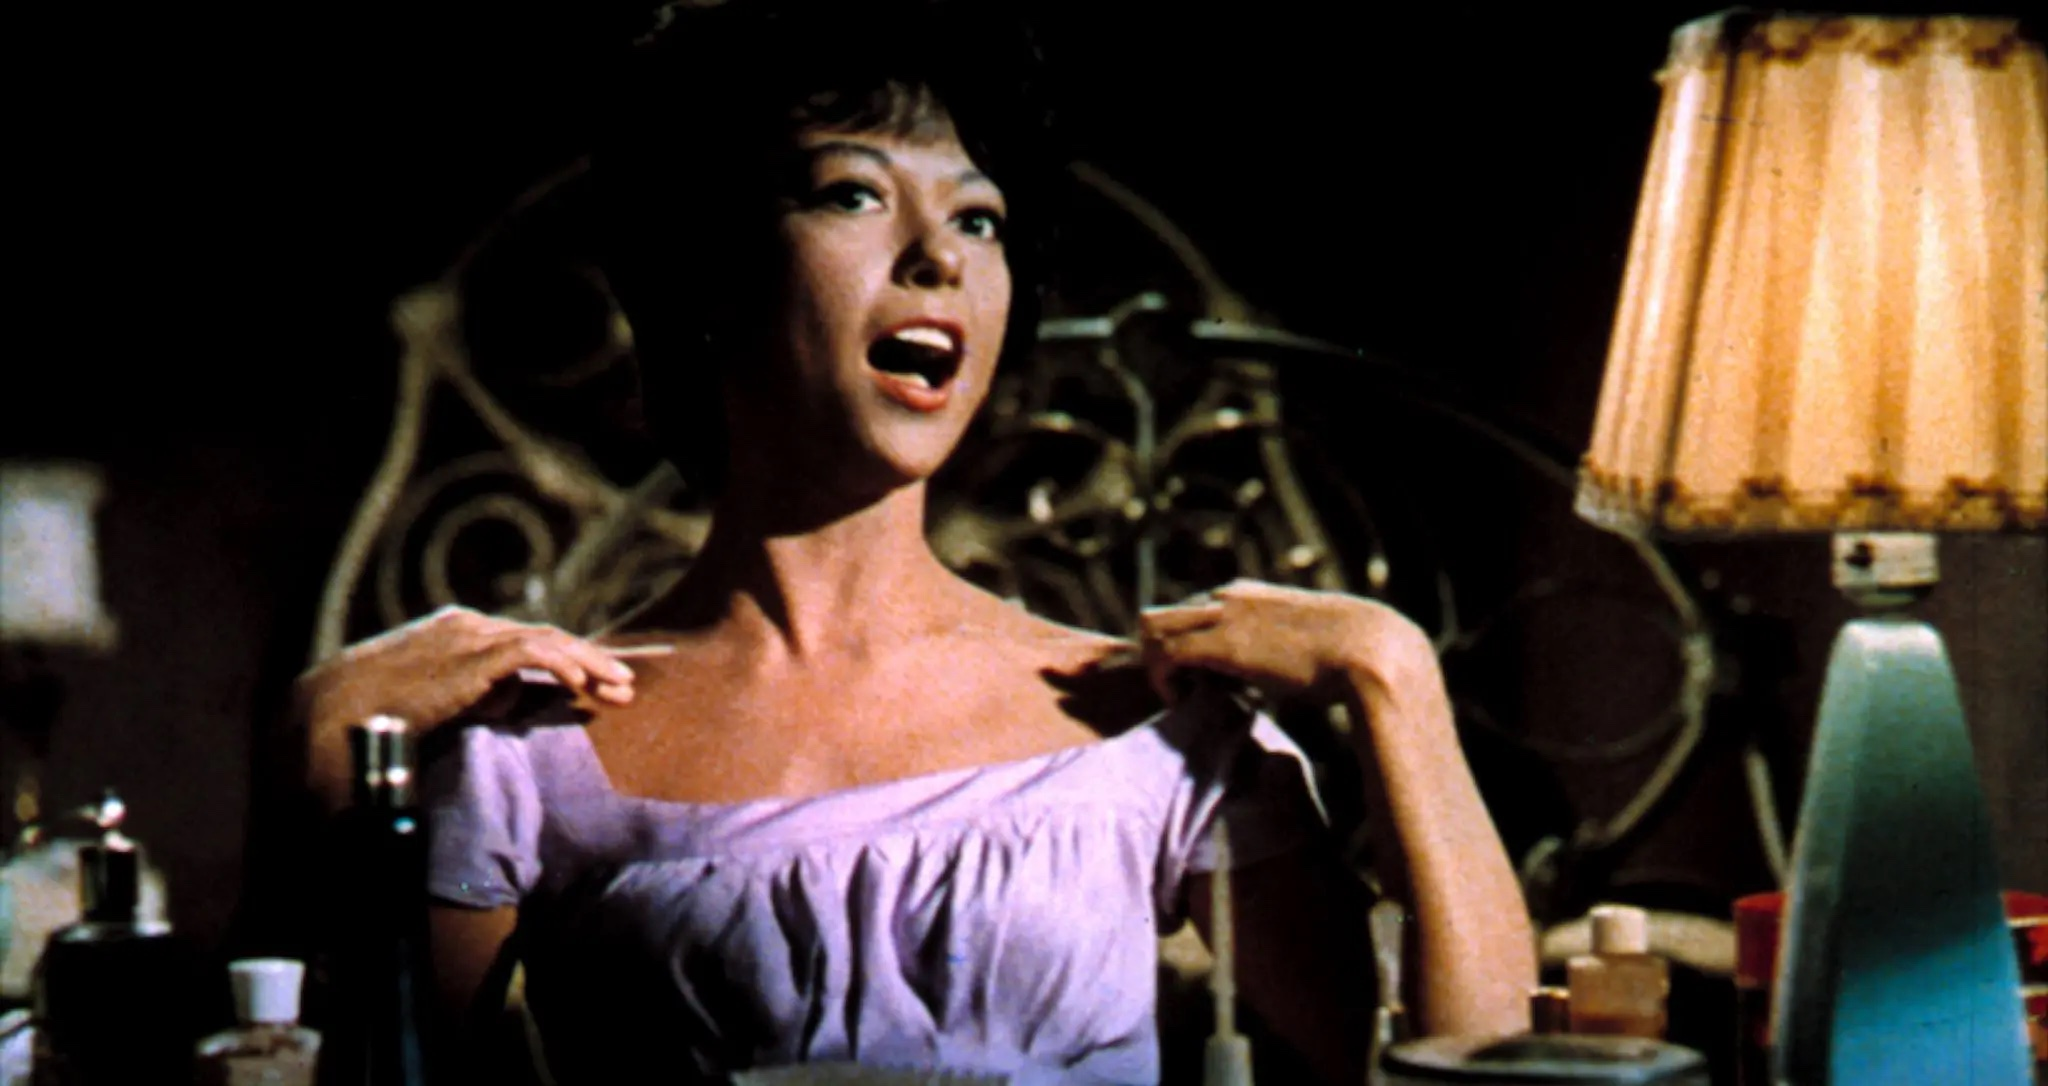 'Rita Moreno: Just a Girl Who Decided to Go for It' – a profile of an 'EGOT'